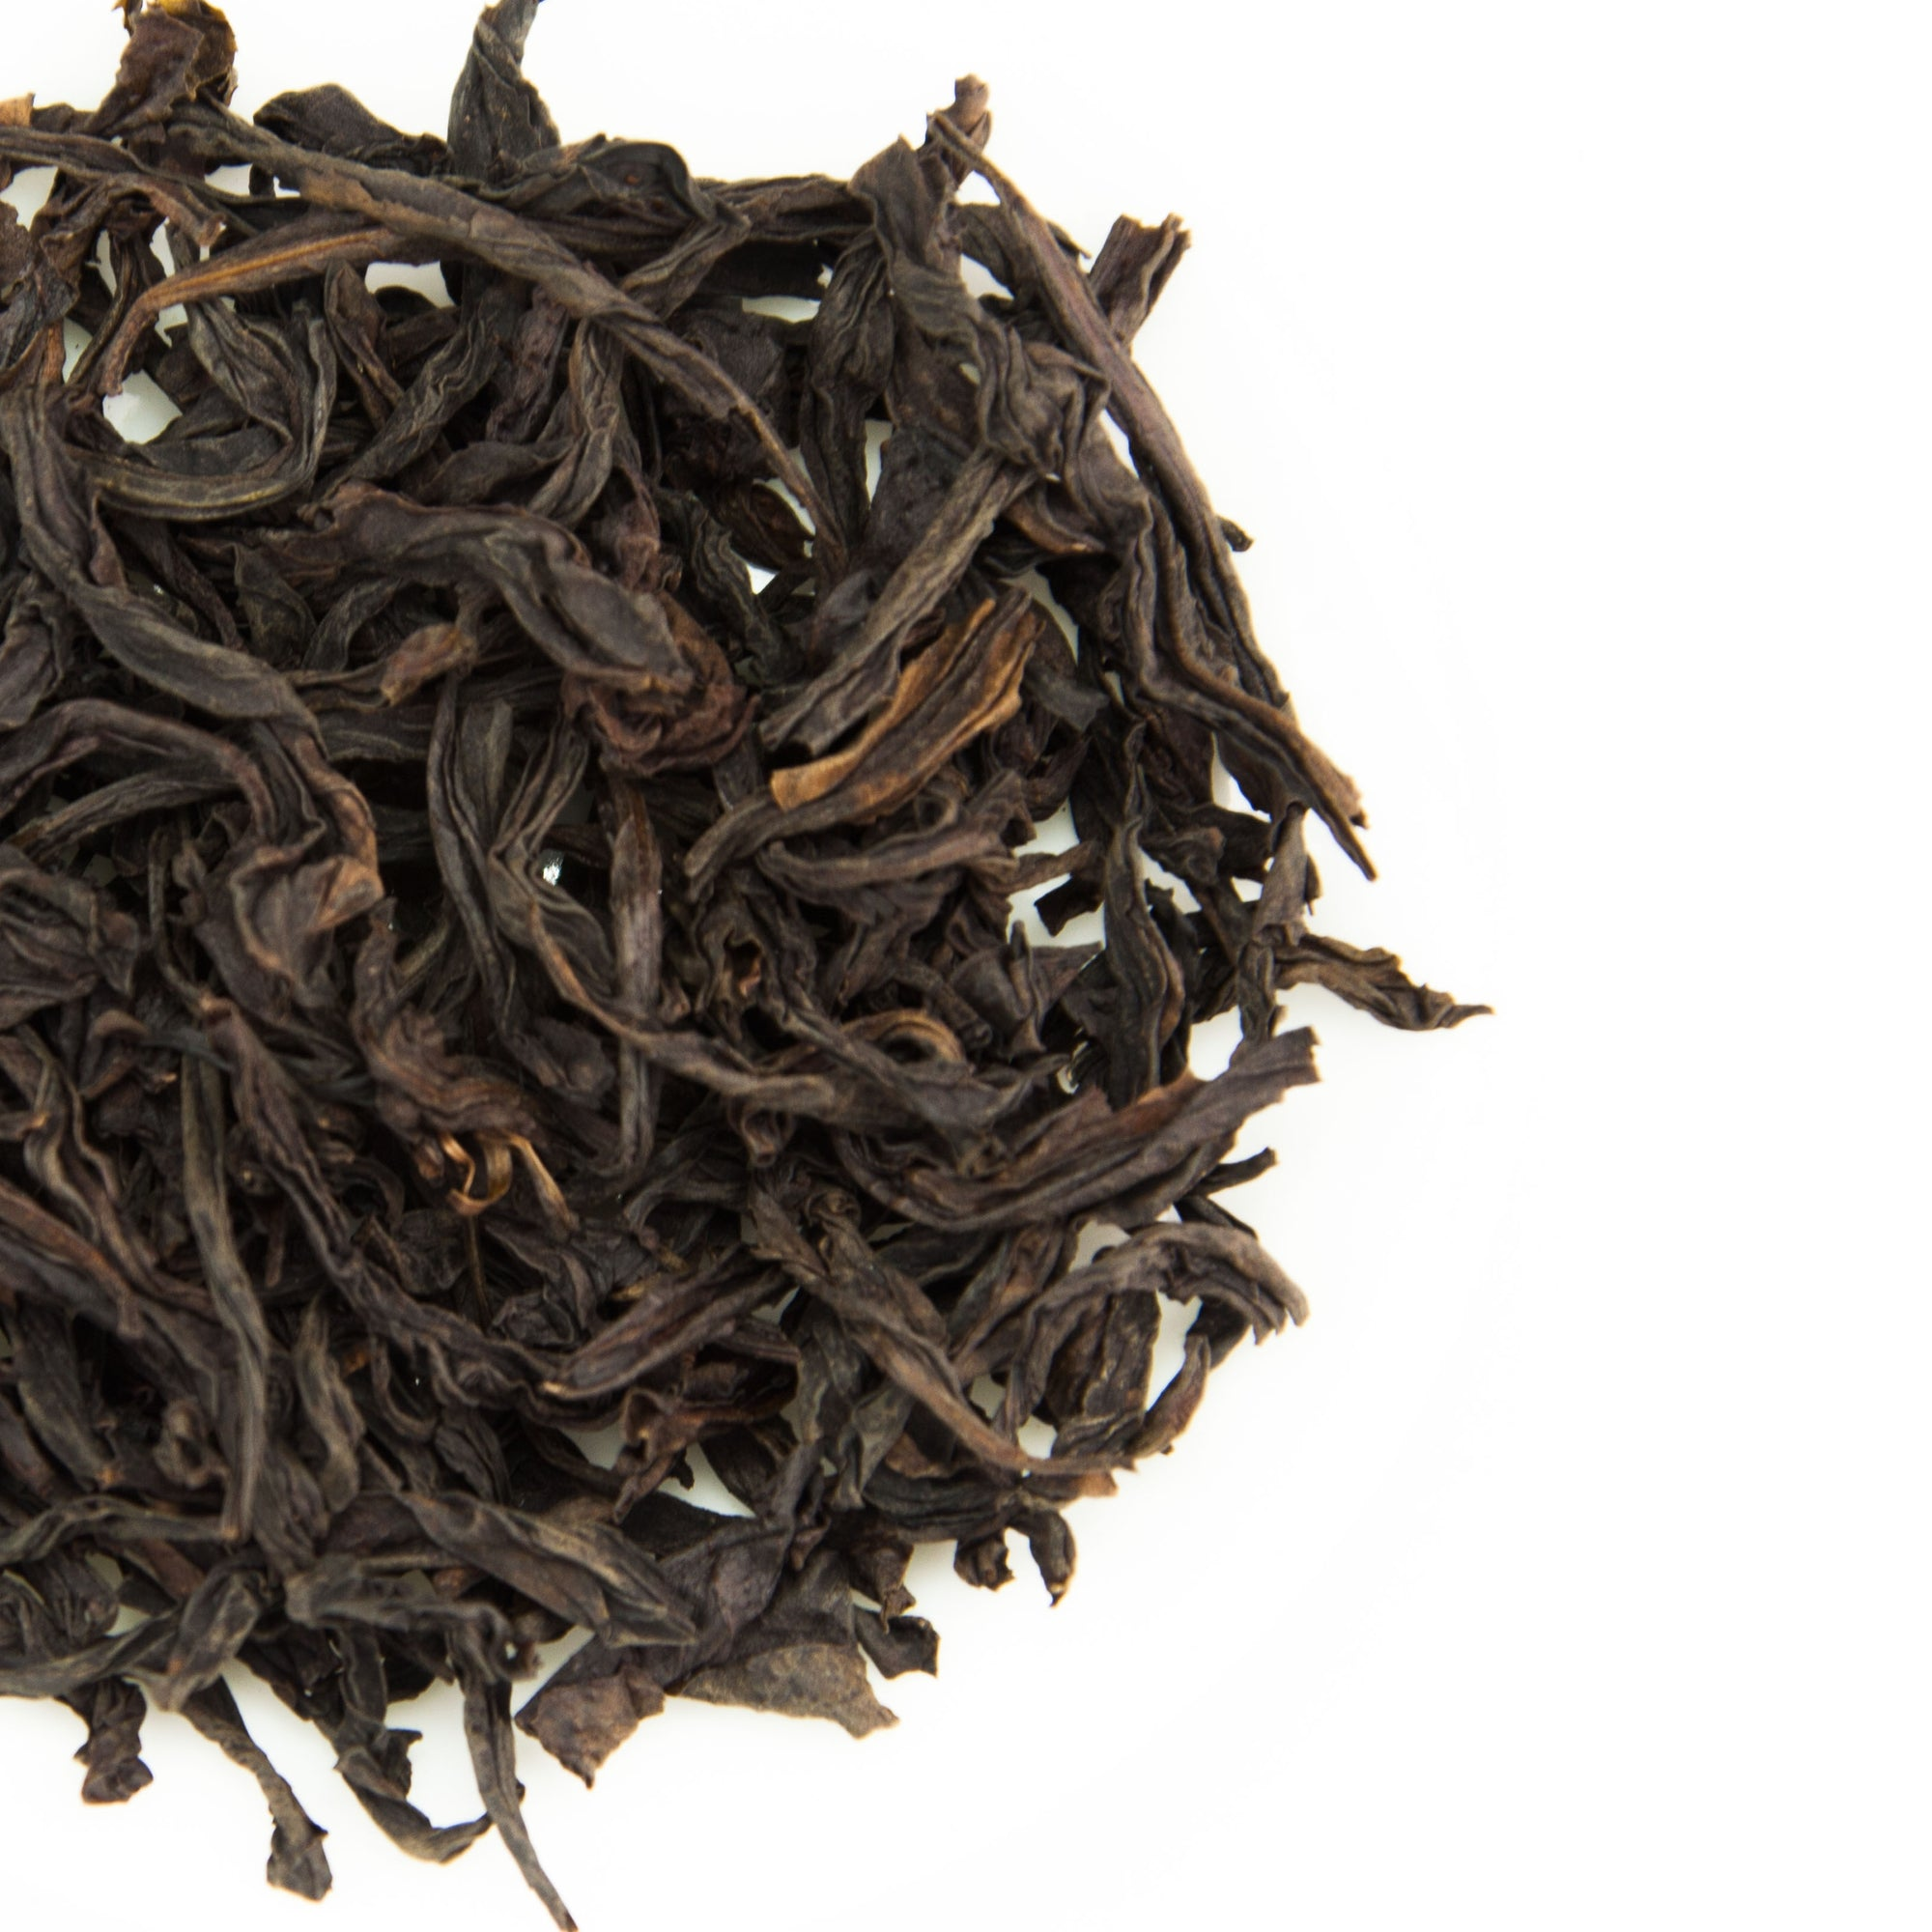 Wu Yi Rock Big Red Robe Da Hong Pao Tea